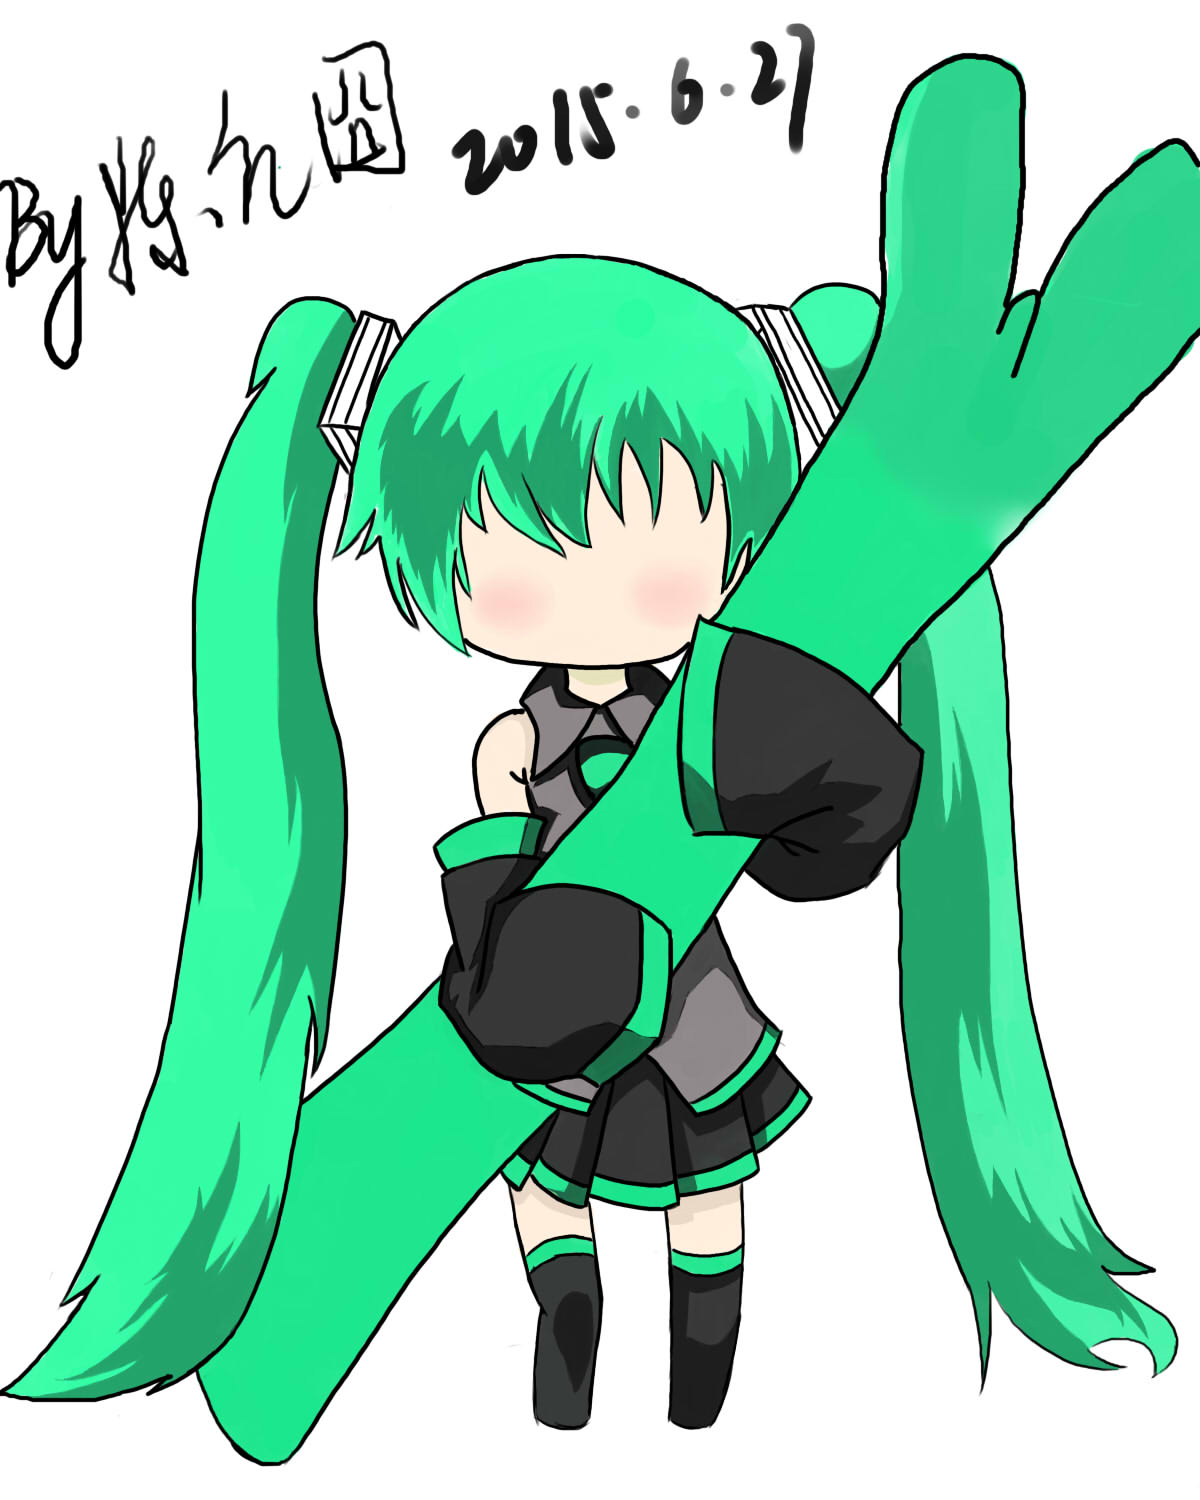 MIku without eyes (Chinese creation)